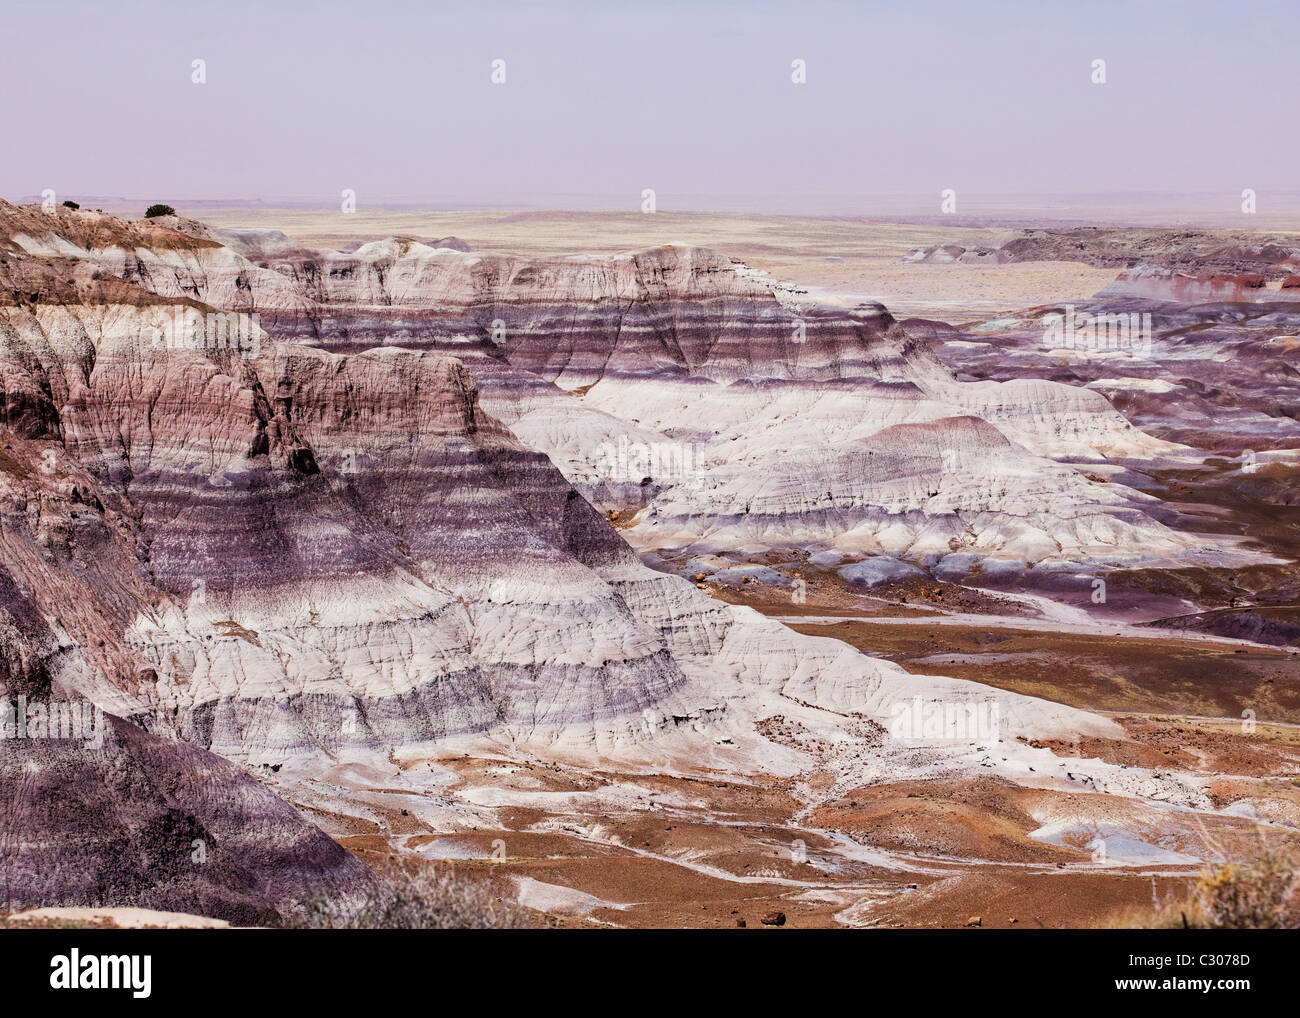 Painted Desert: exposed deposits of prehistoric mudstone and sandstone beds - Petrified Forest National Park, Arizona - Stock Image